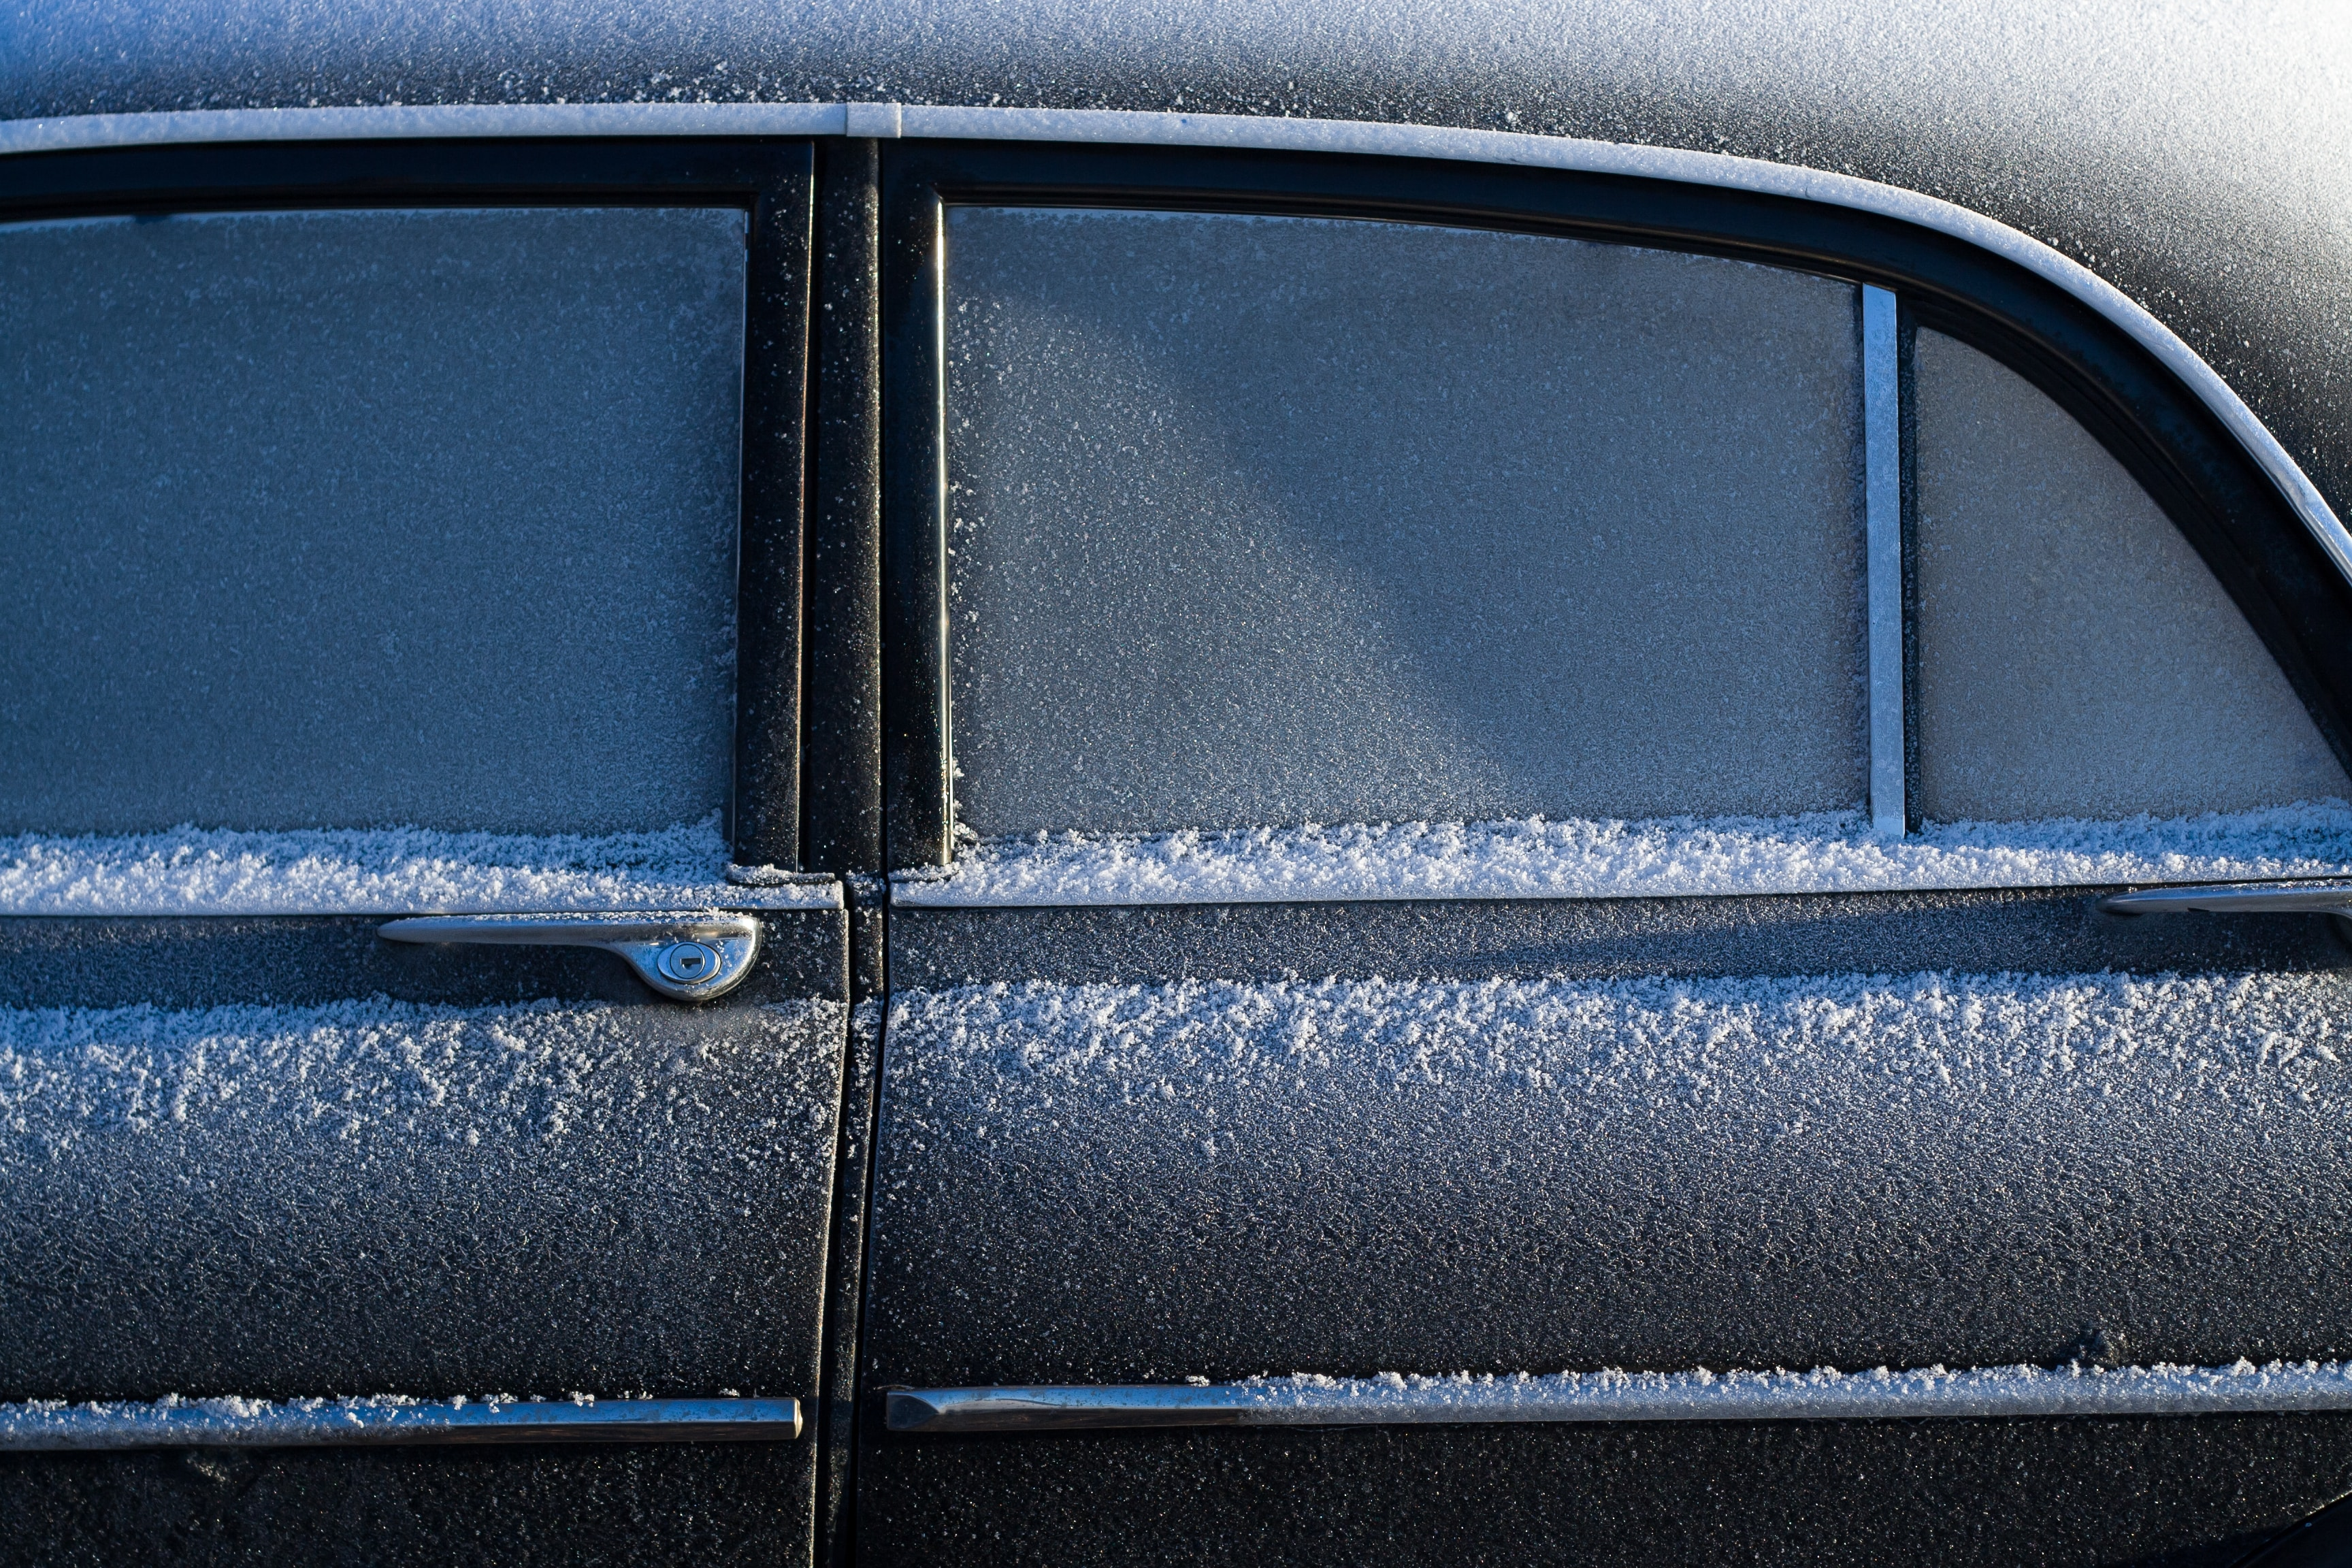 How long does it take to warm up a car in winter?